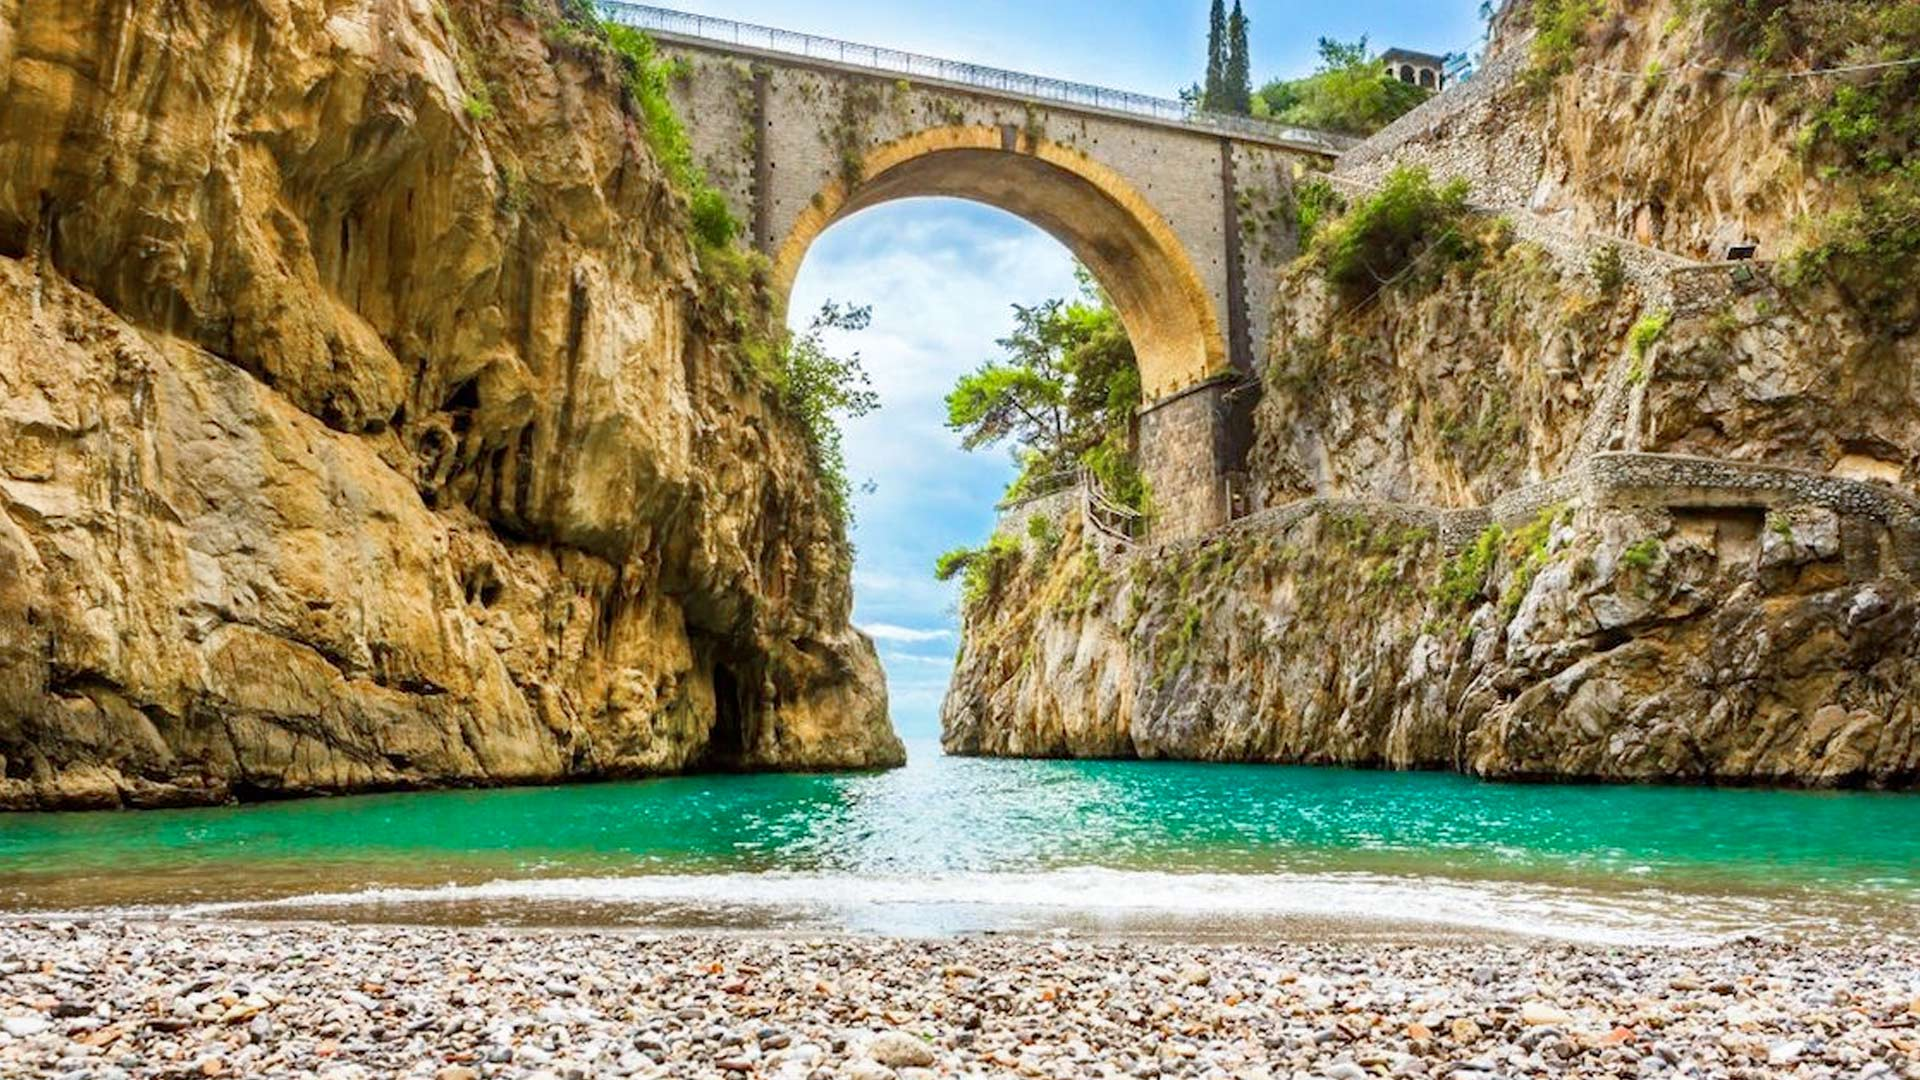 Excursions in Amalfi with Ischia Charter Boat